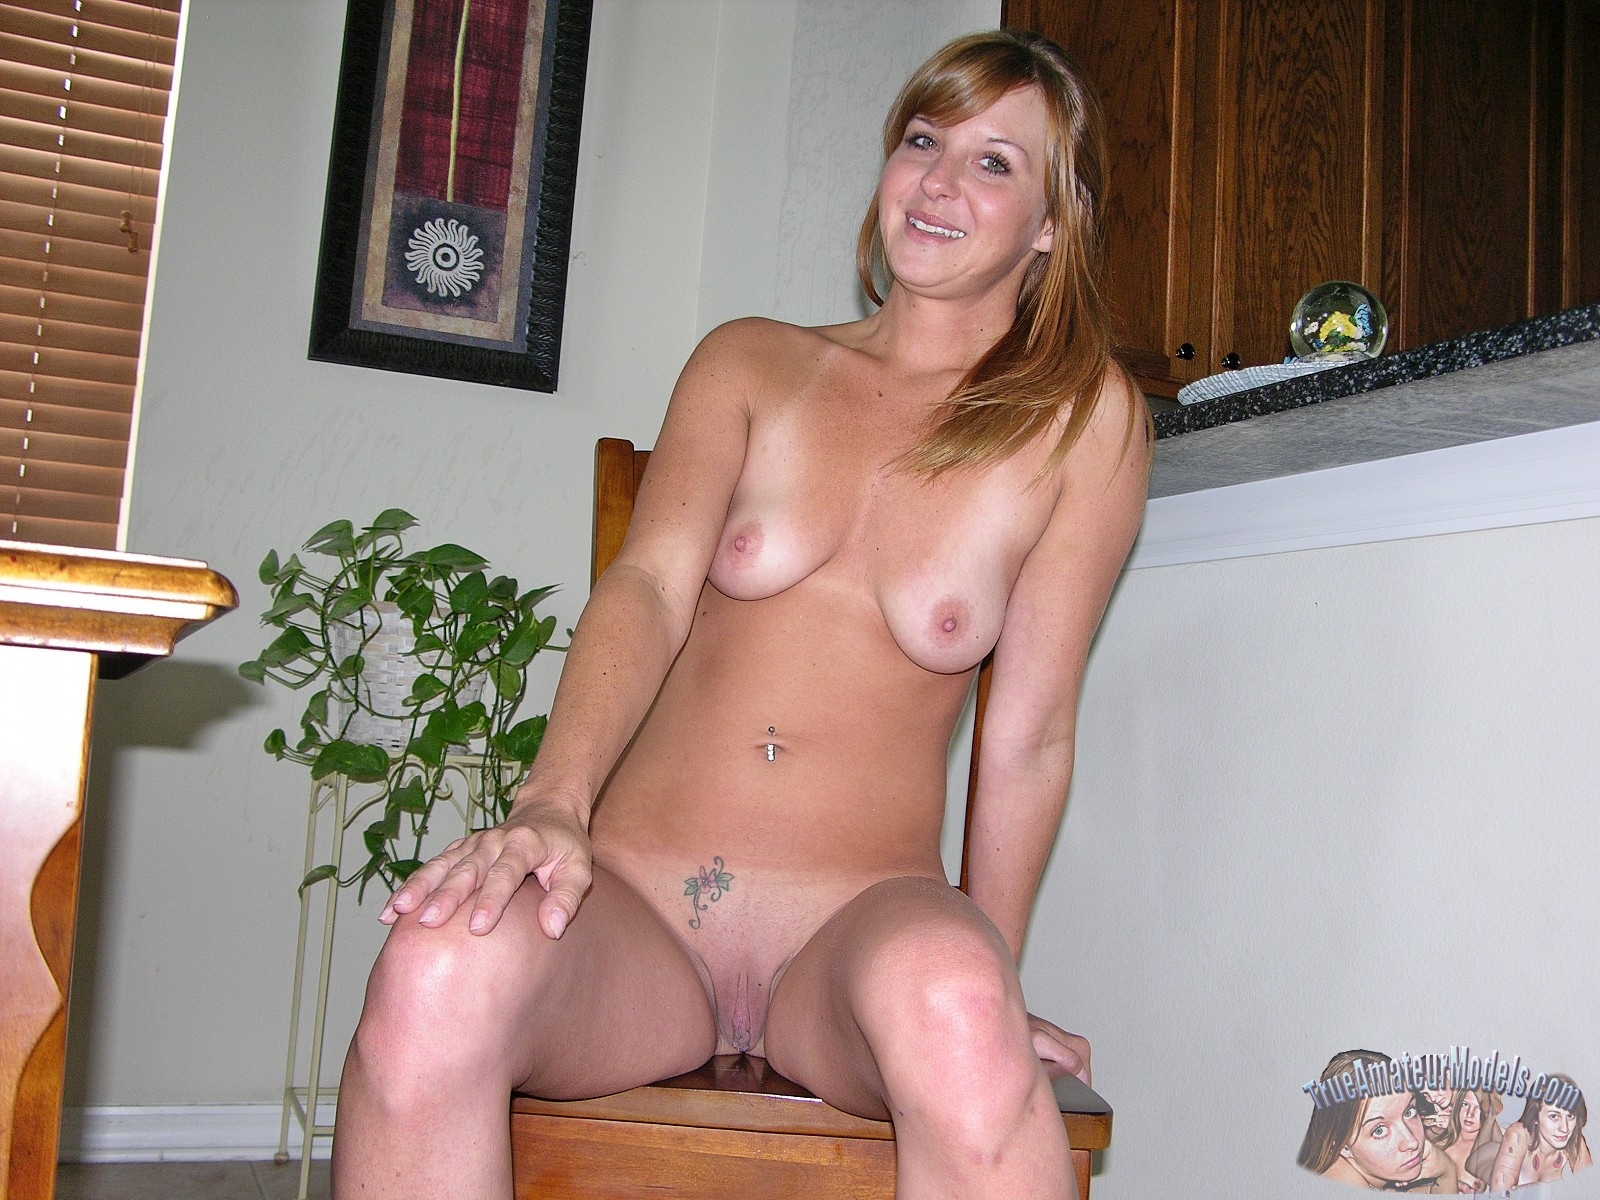 Real Homemade Models - HD Nude Modeling - Jessica Lynn From True Amateur Models